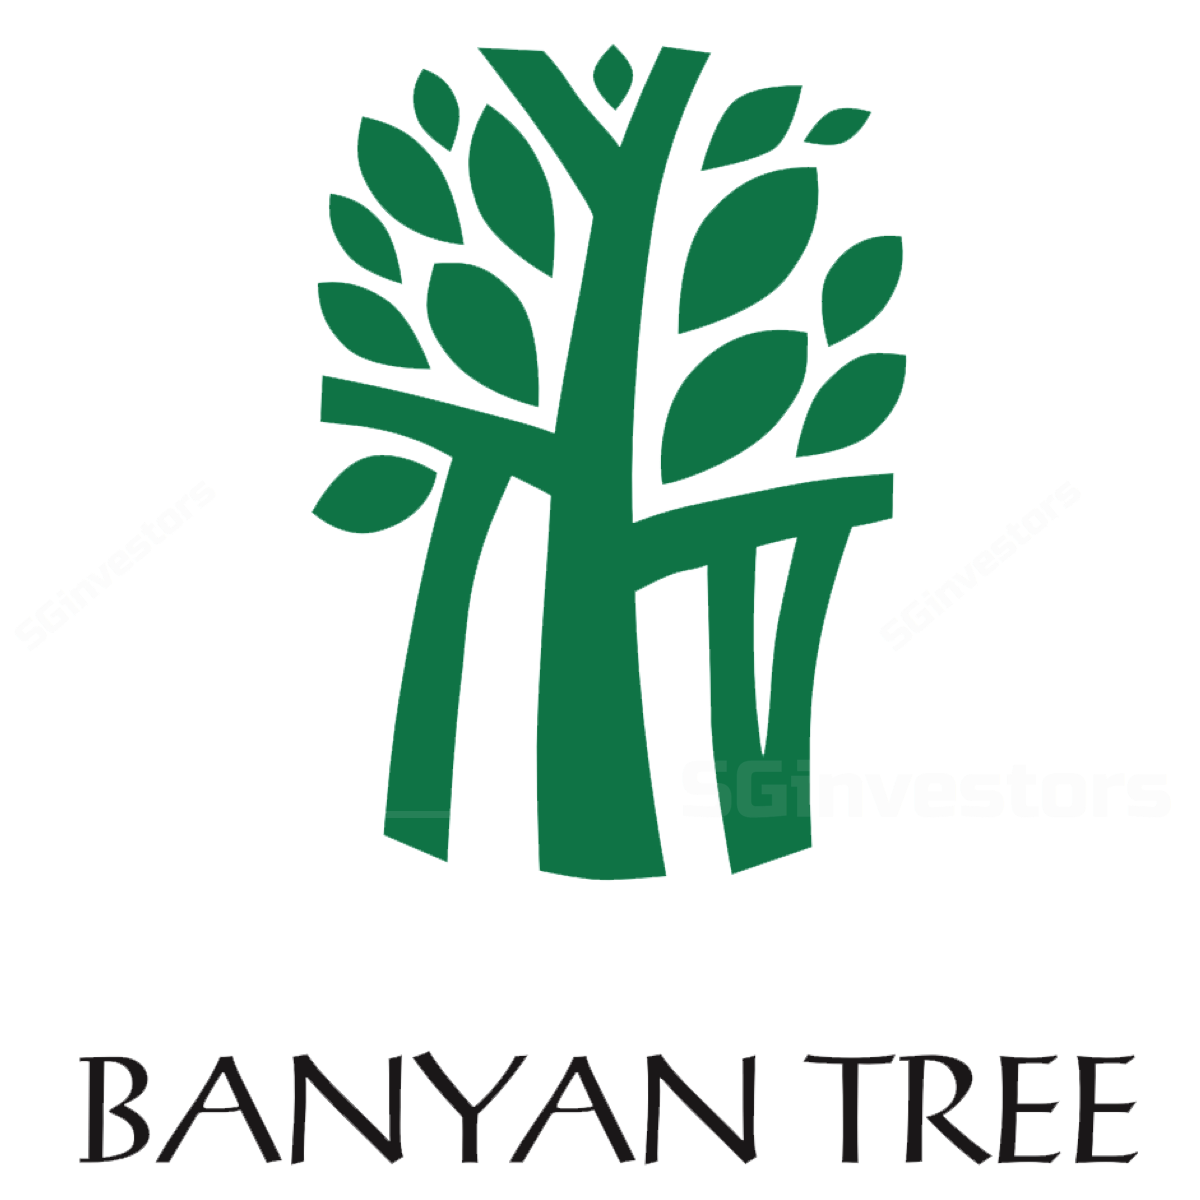 Banyan Tree Holdings - UOB Kay Hian Research 2018-08-15: 2q18 Mixed Bag Of Results, Awaiting Divestment Of China Assets